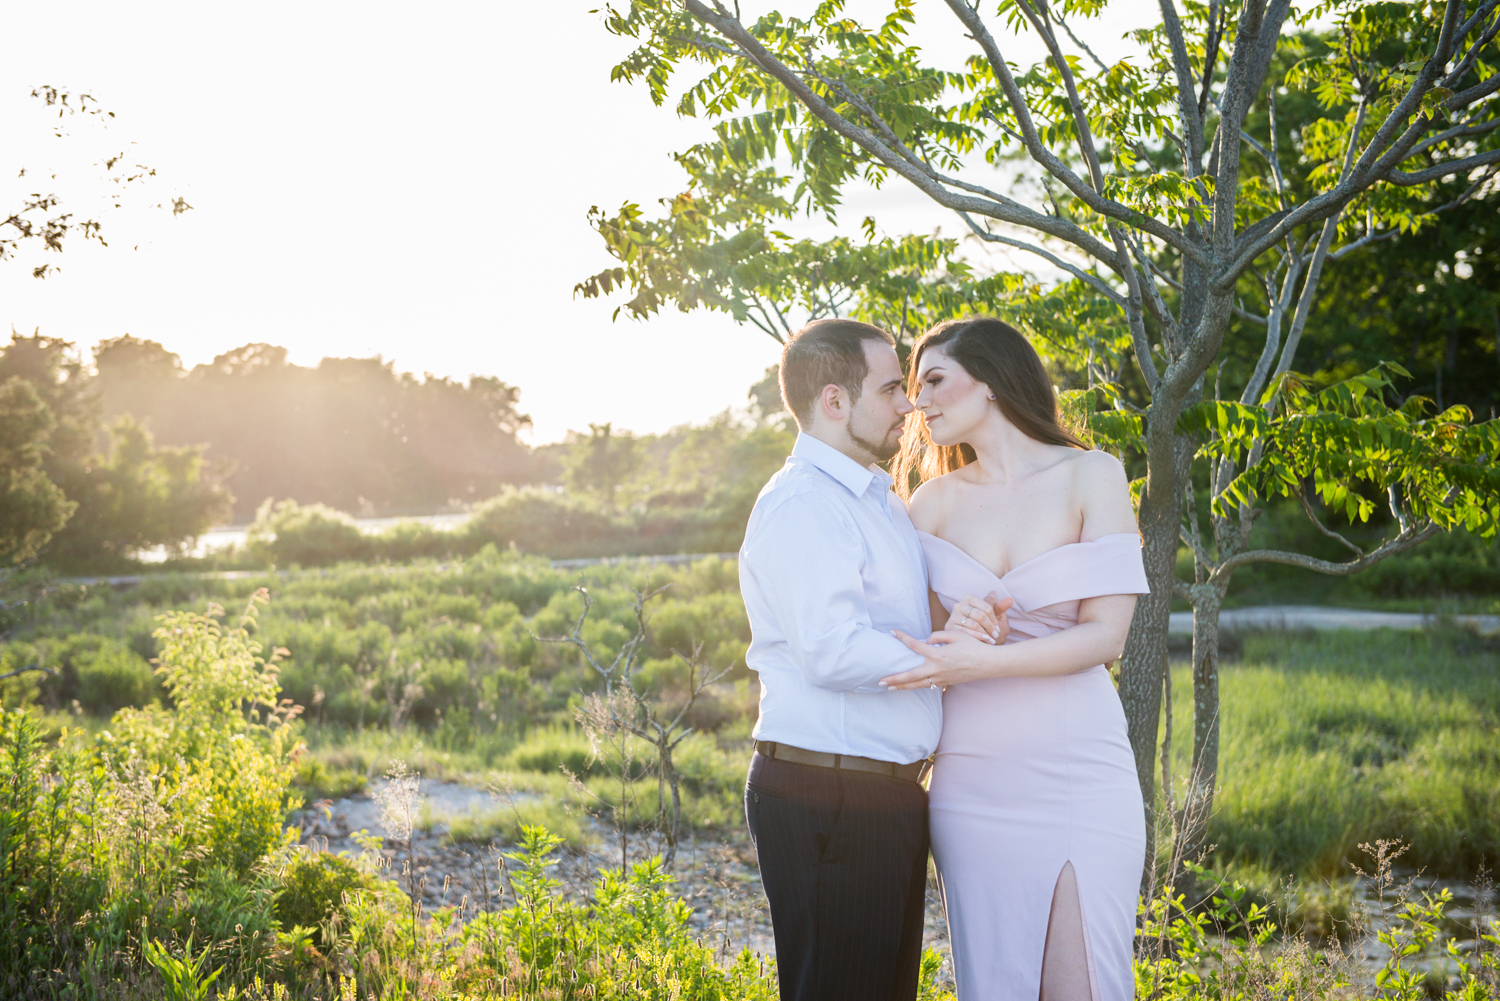 tods-point-park-engagement-session-1.jpg